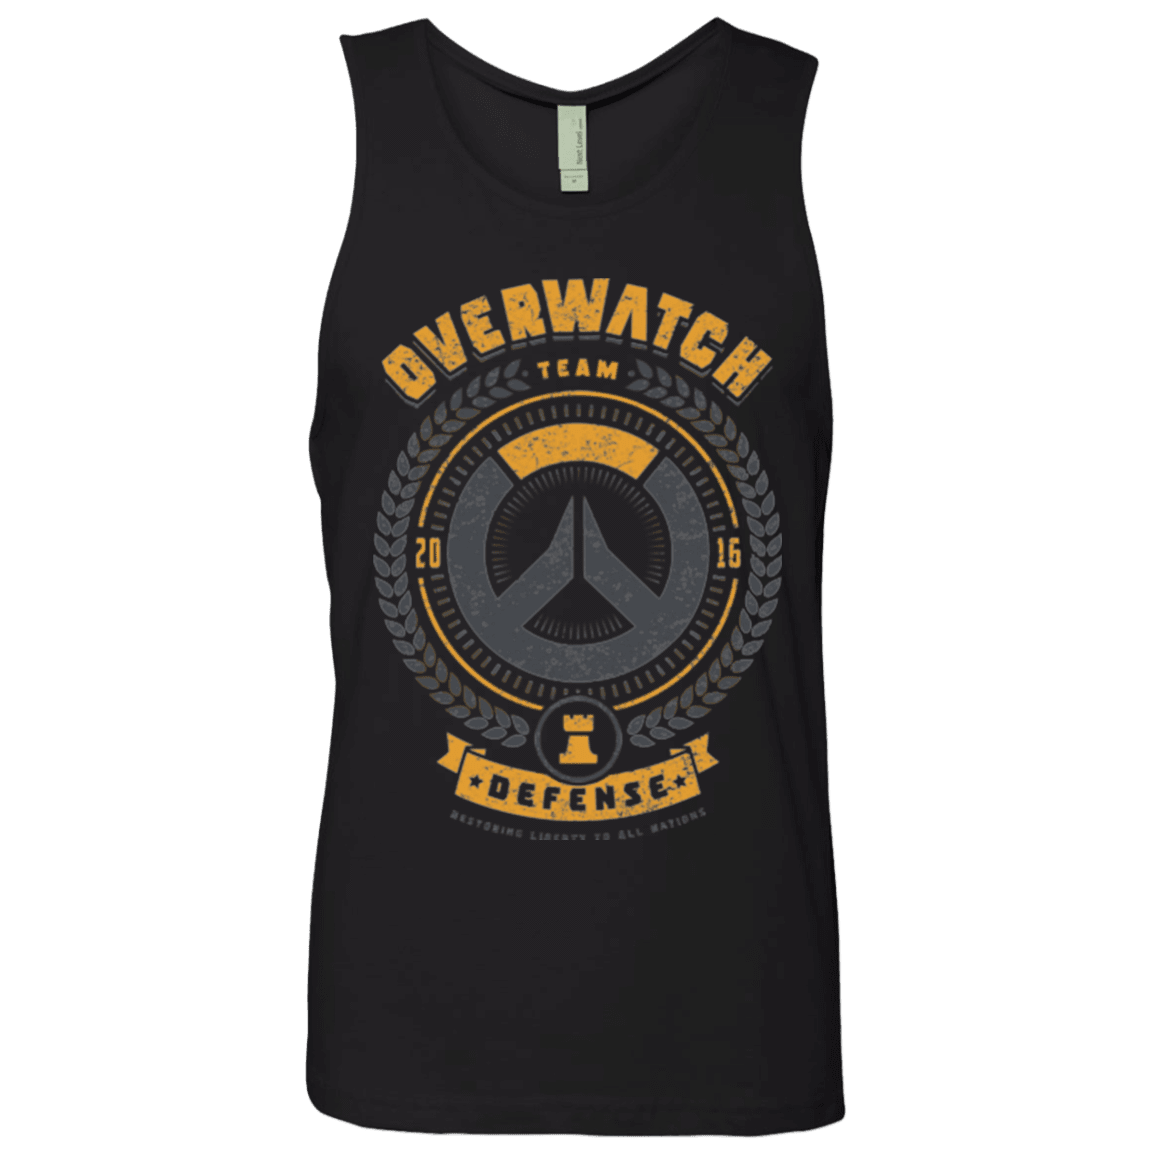 Defense Team Men's Premium Tank Top